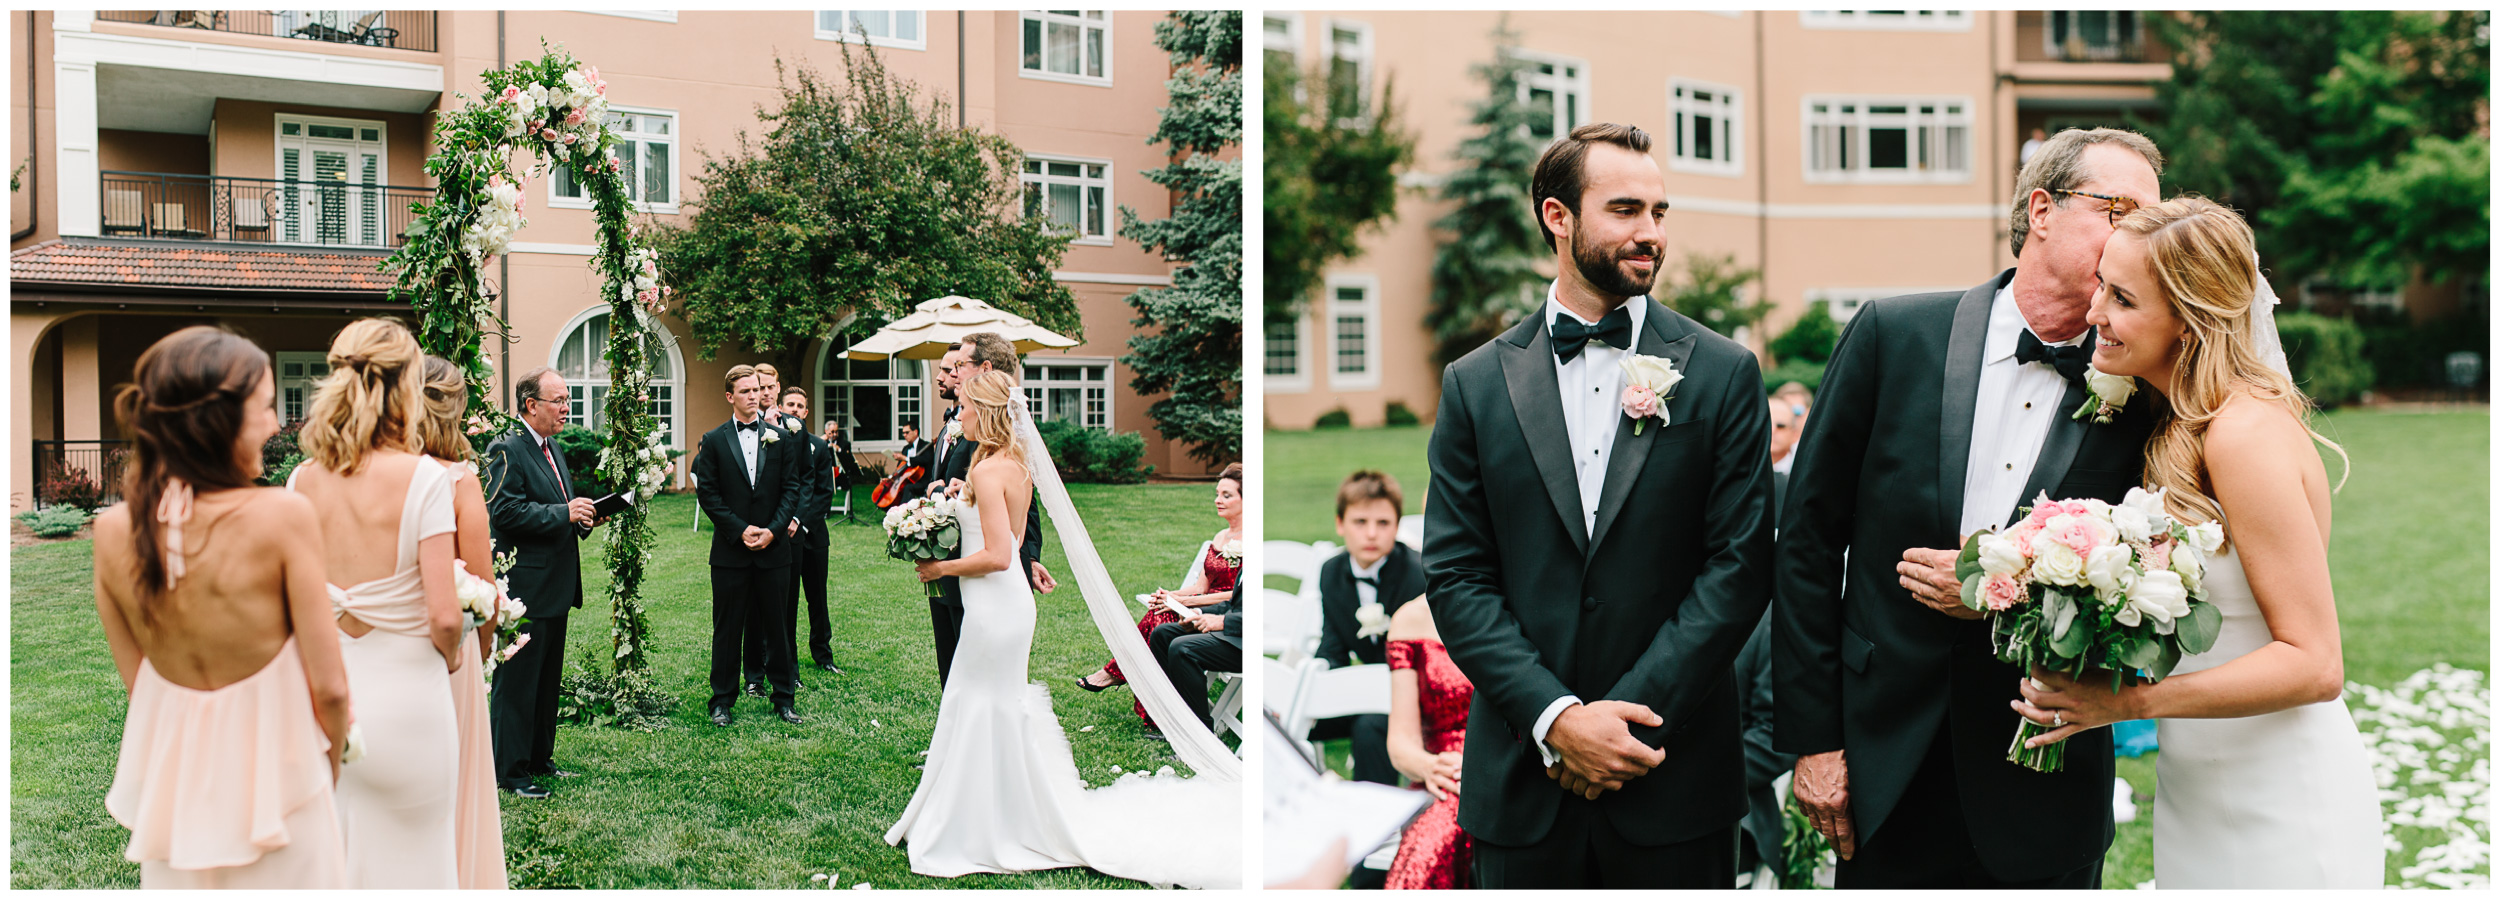 broadmoor_wedding_36.jpg